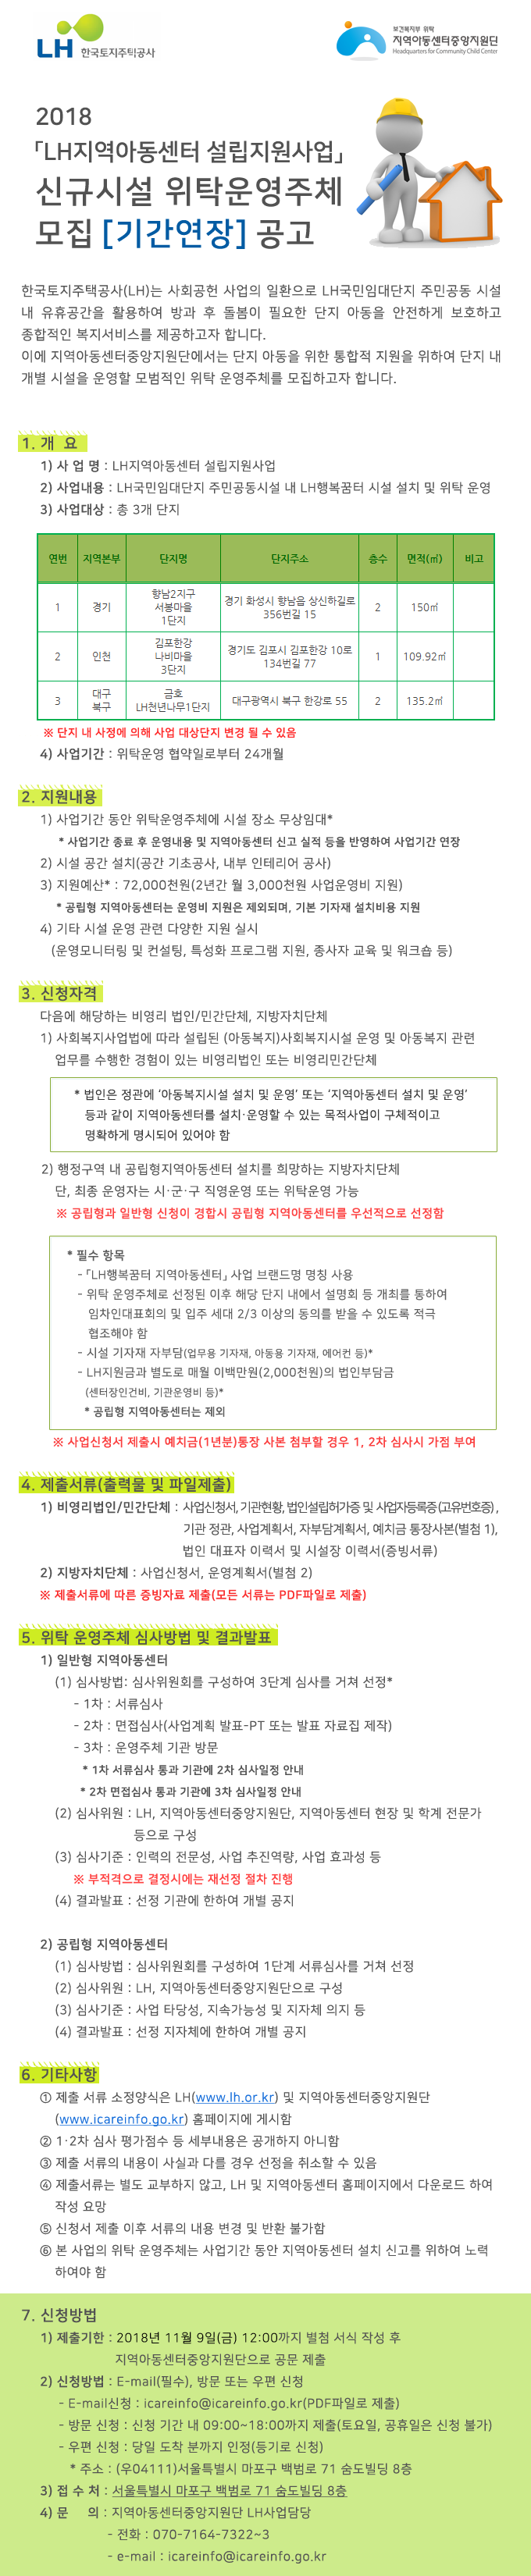 신규lh_notice1_edit.png